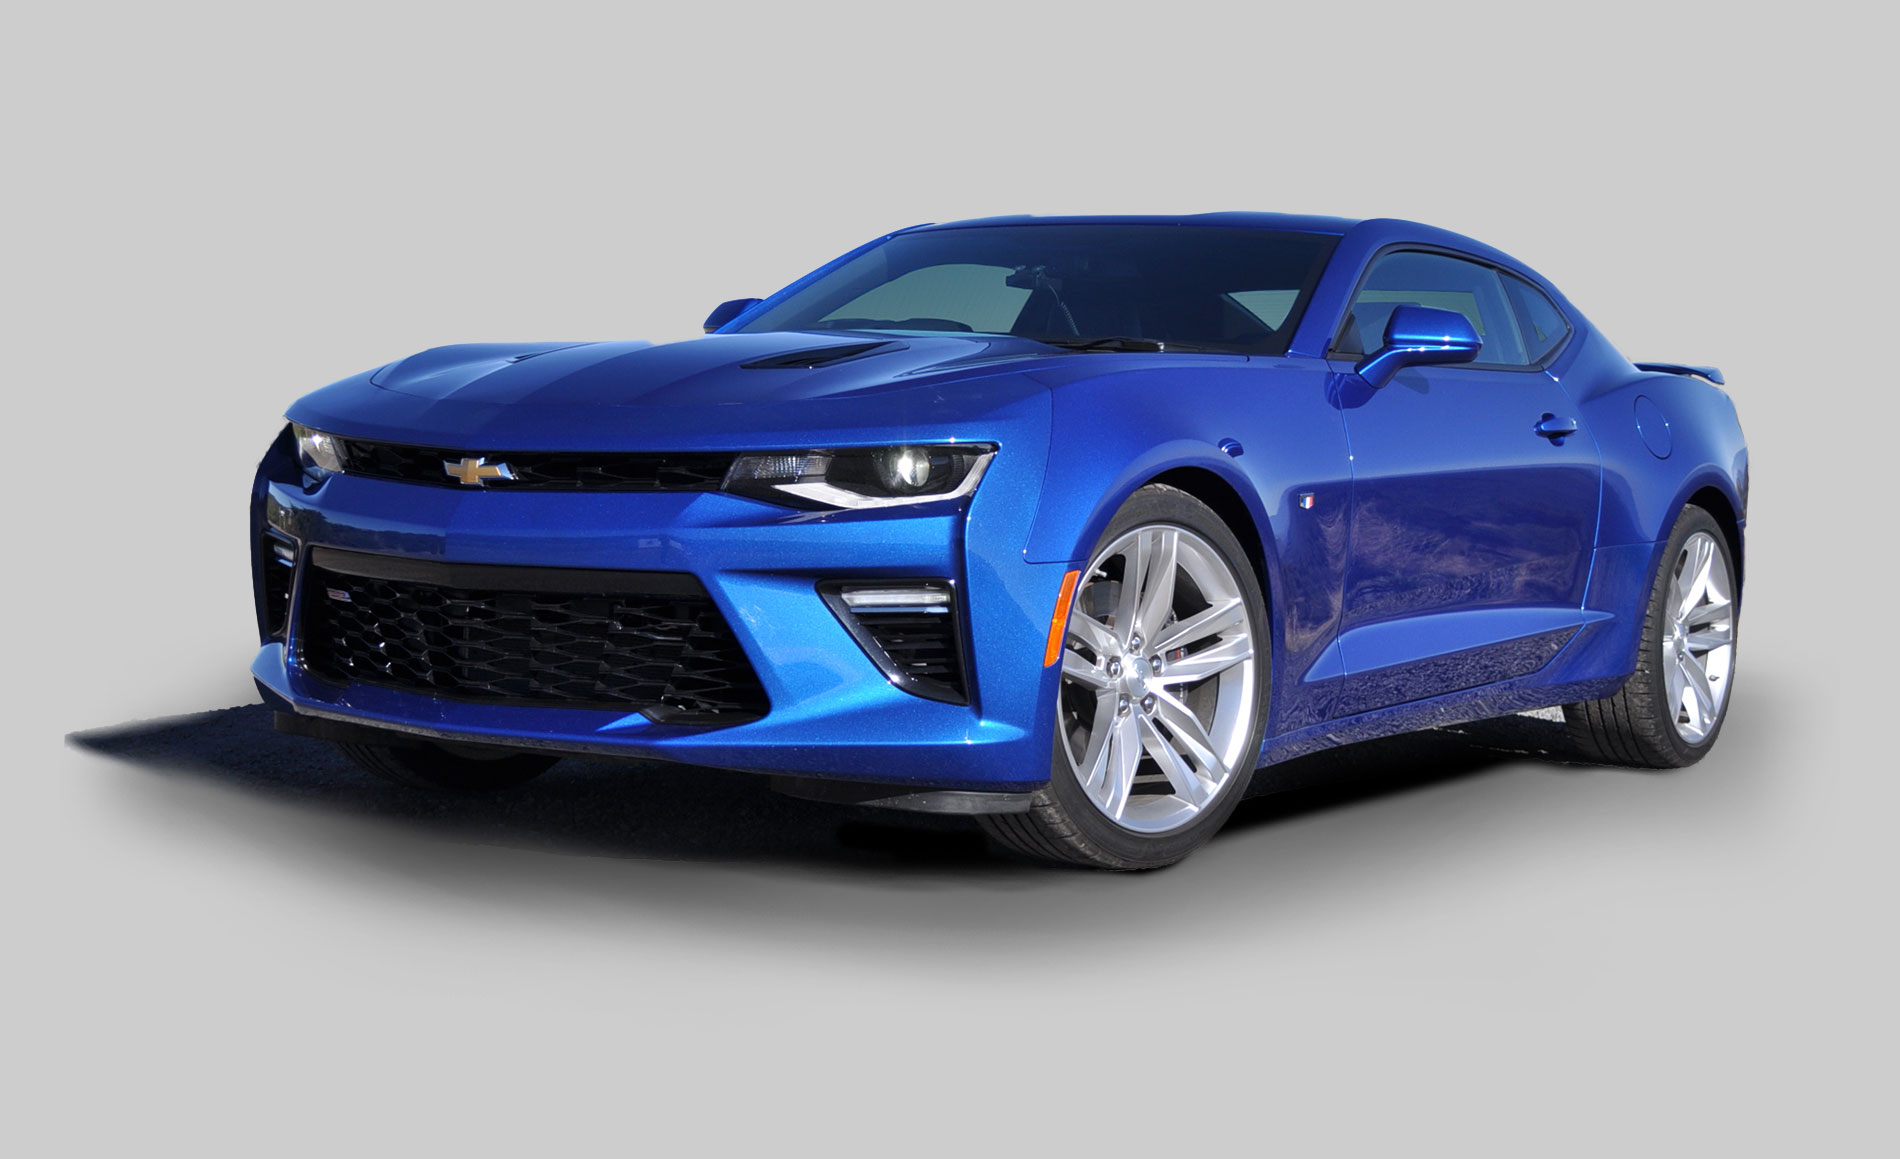 6Th Gen Camaro >> Performance Packages For The Chevrolet Camaro 6th Gen Ss